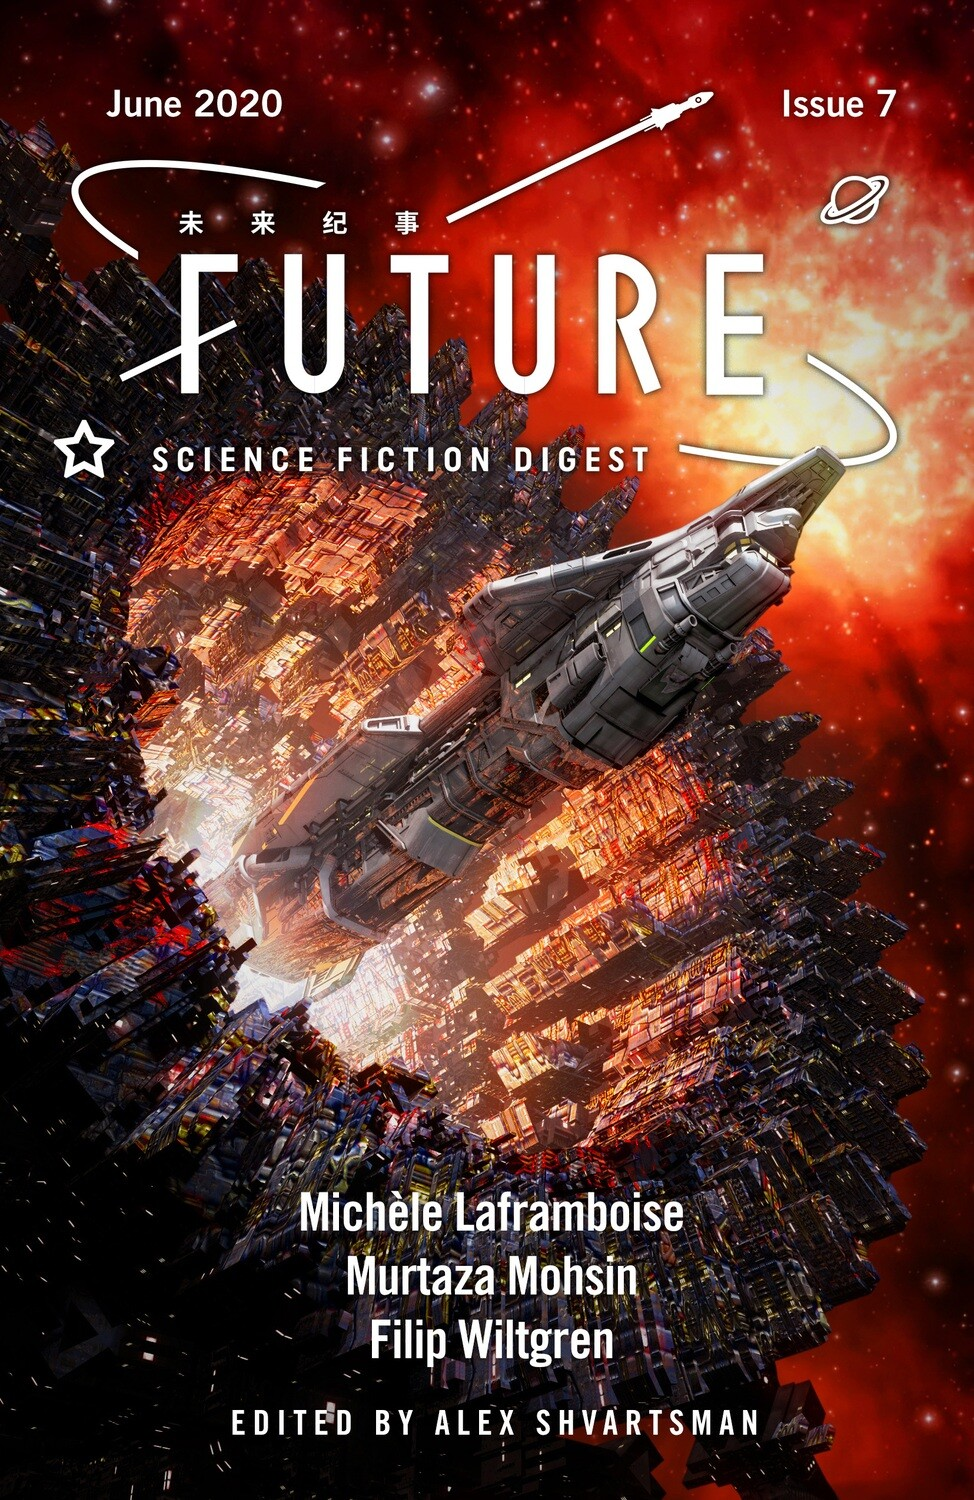 Future Science Fiction Digest Issue 7